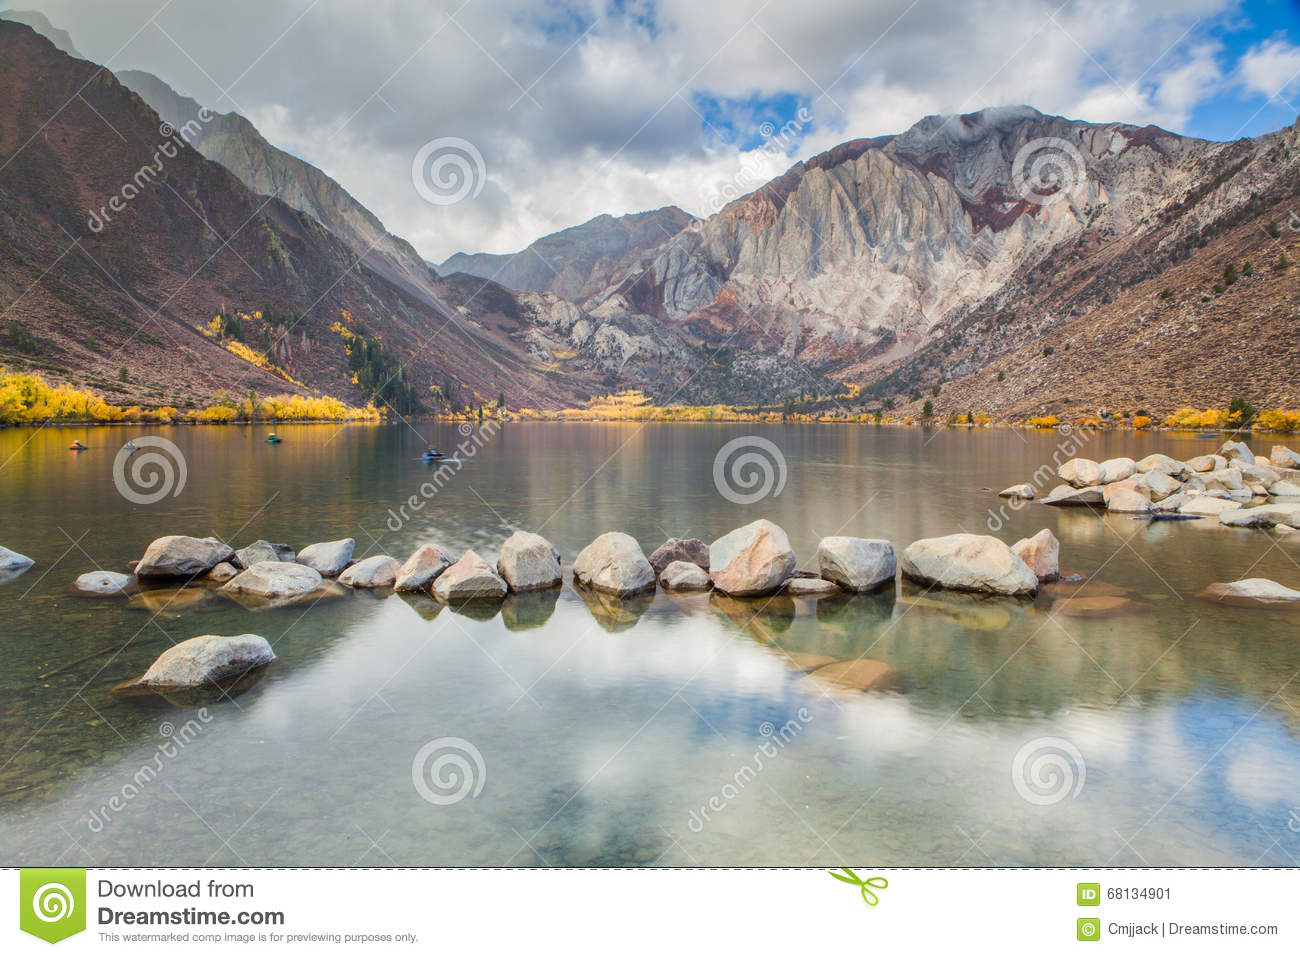 Convict Lake in the Eastern Sierra Mountains in autumn, California, USA